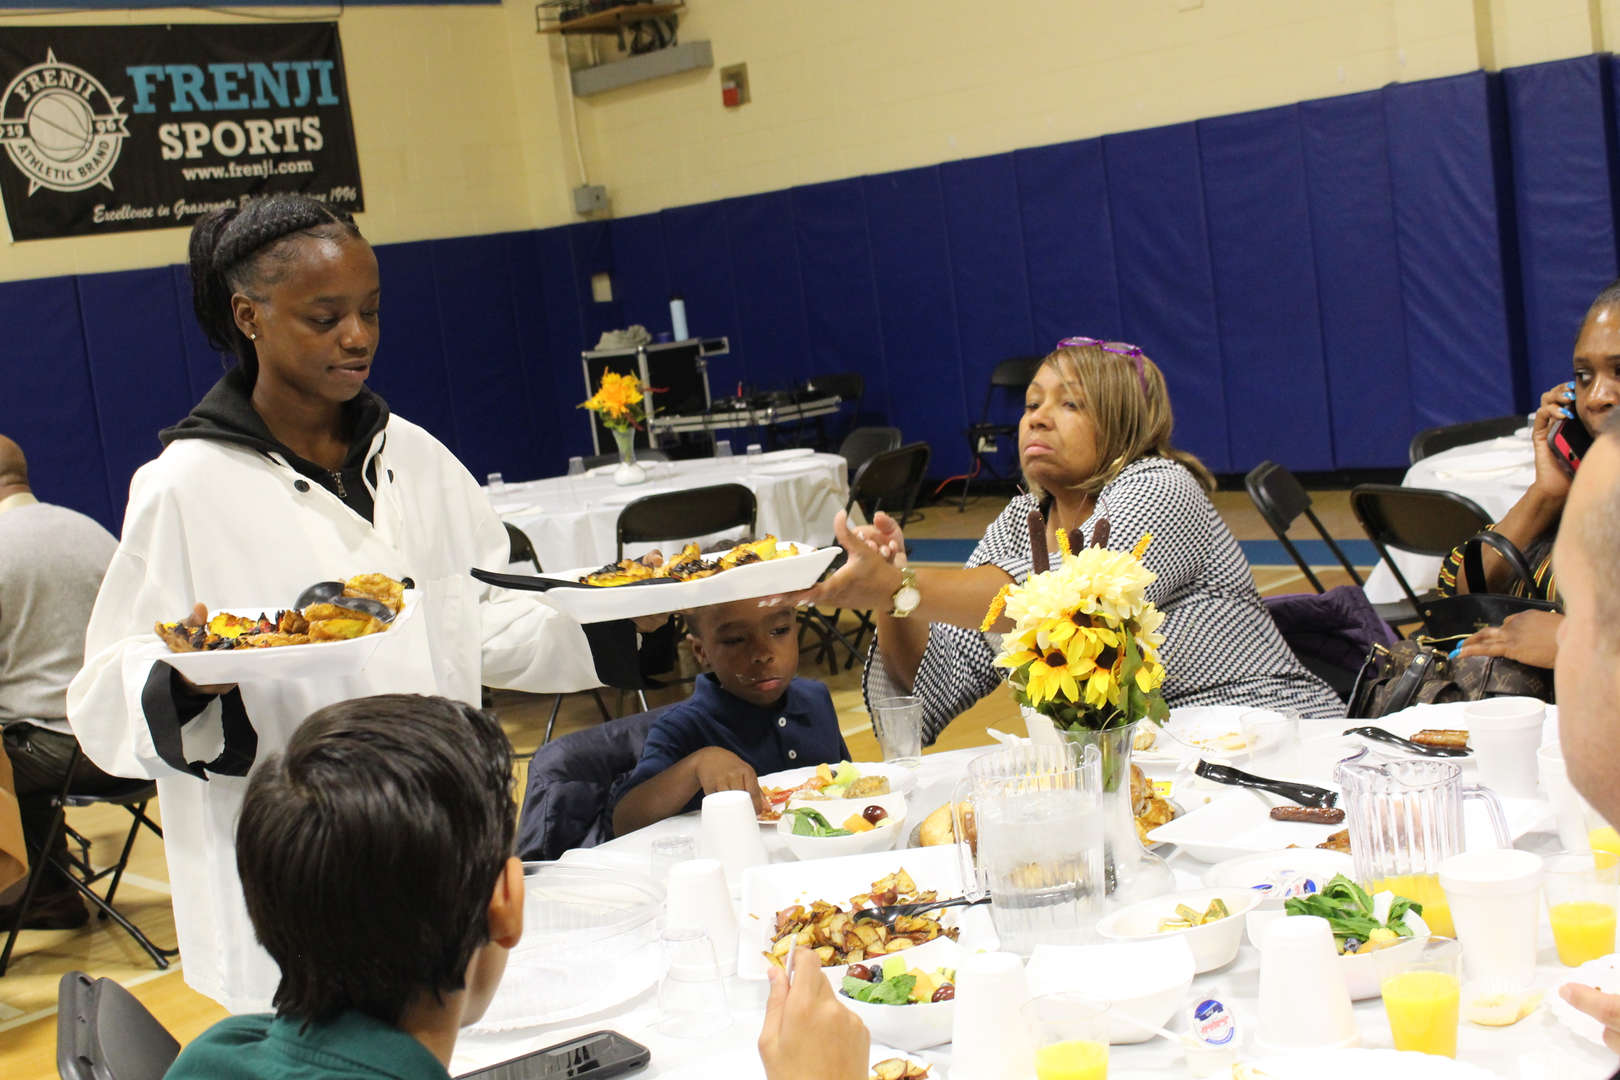 Student serves breakfast at community meal